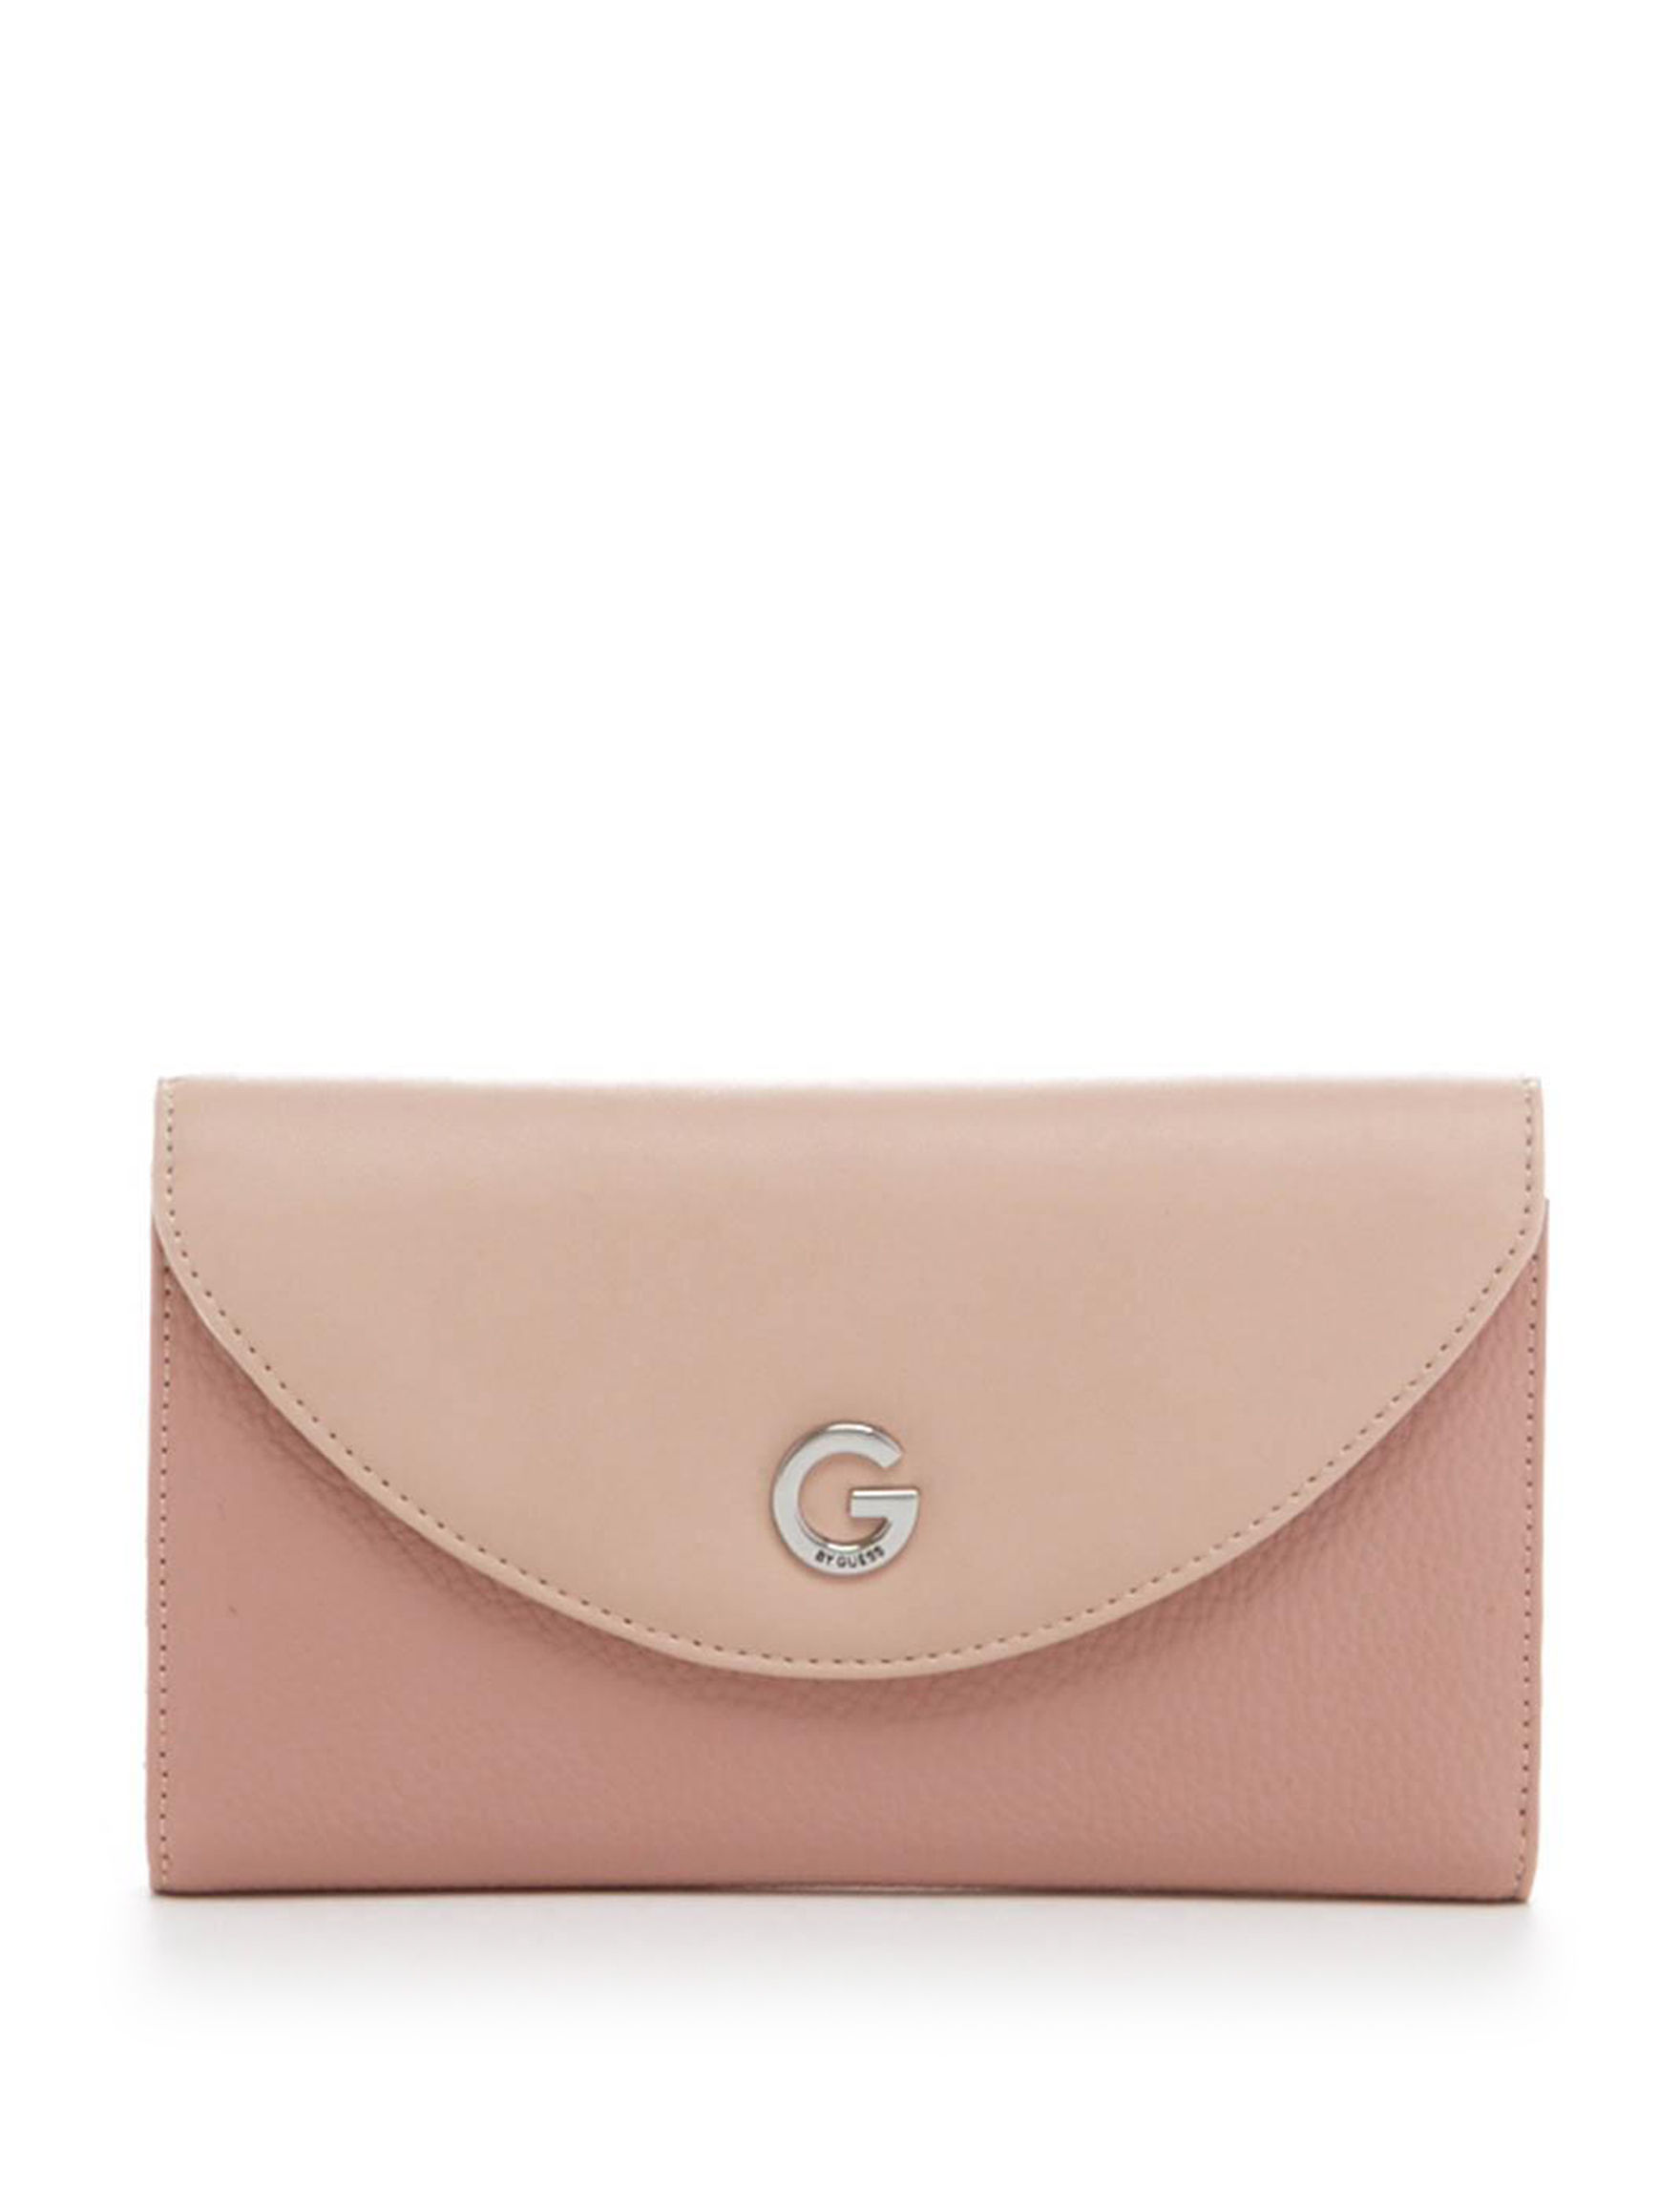 G by Guess Pink Multi